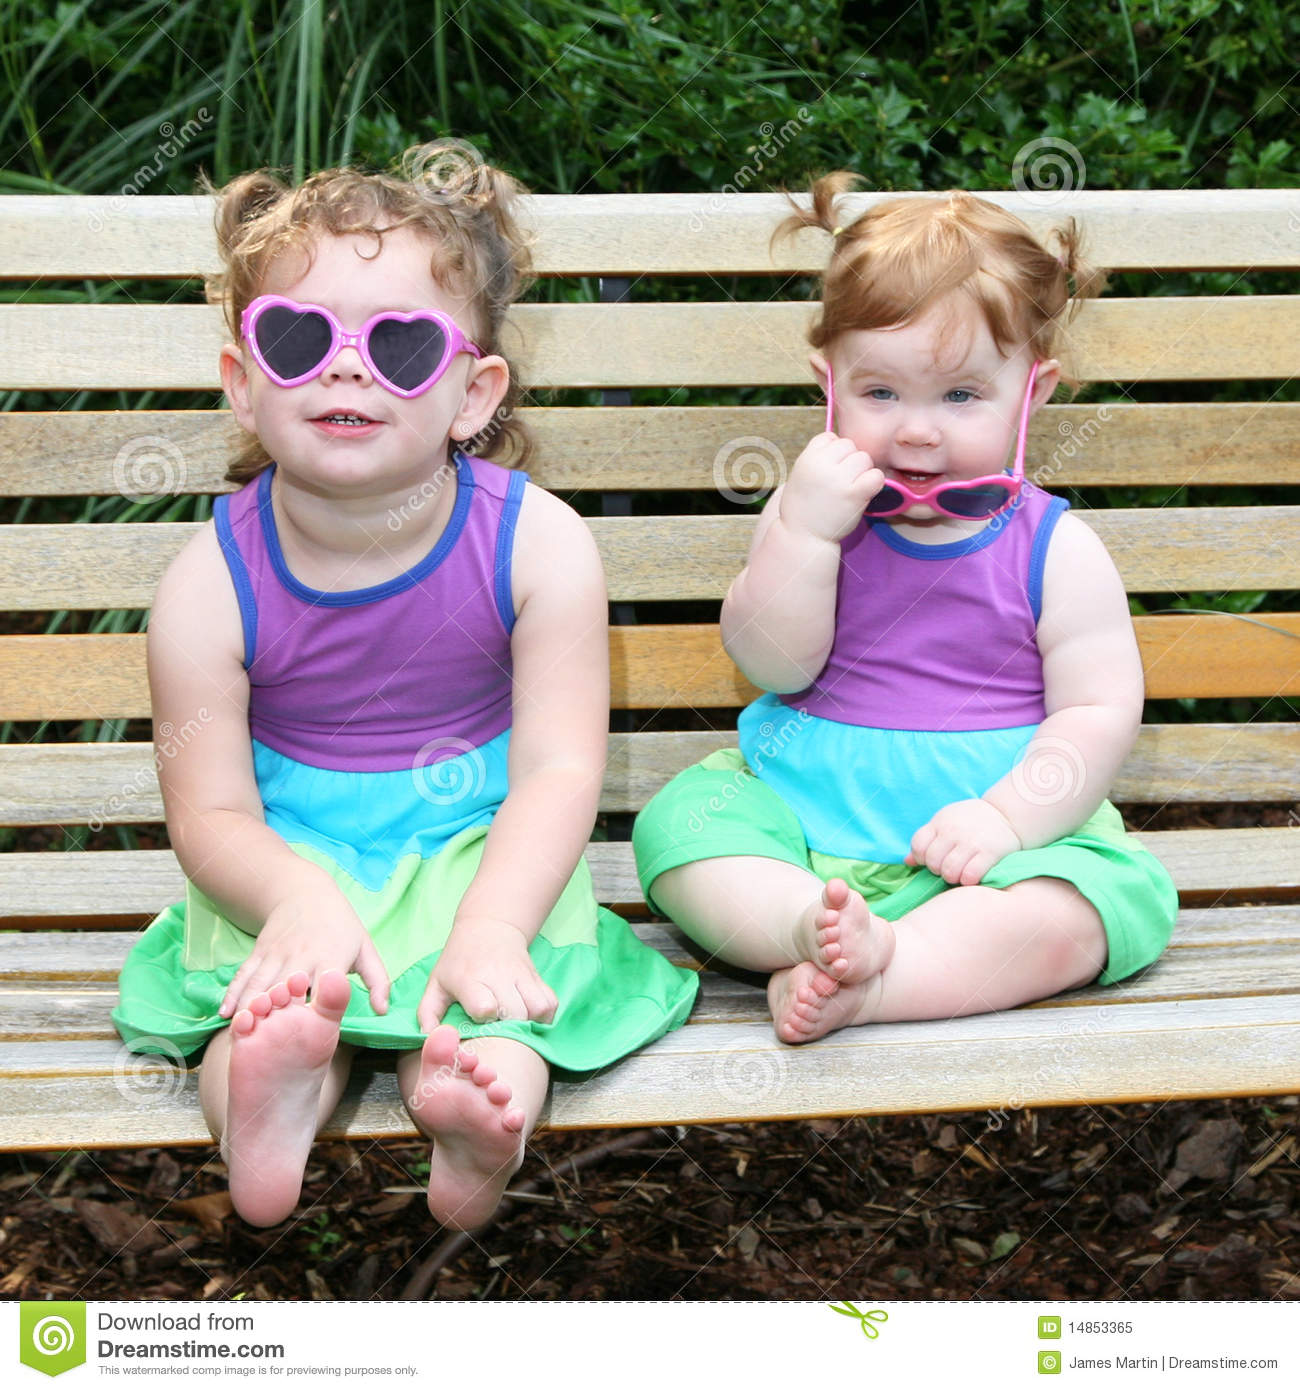 Two baby girls in sunglasses and sun dresses